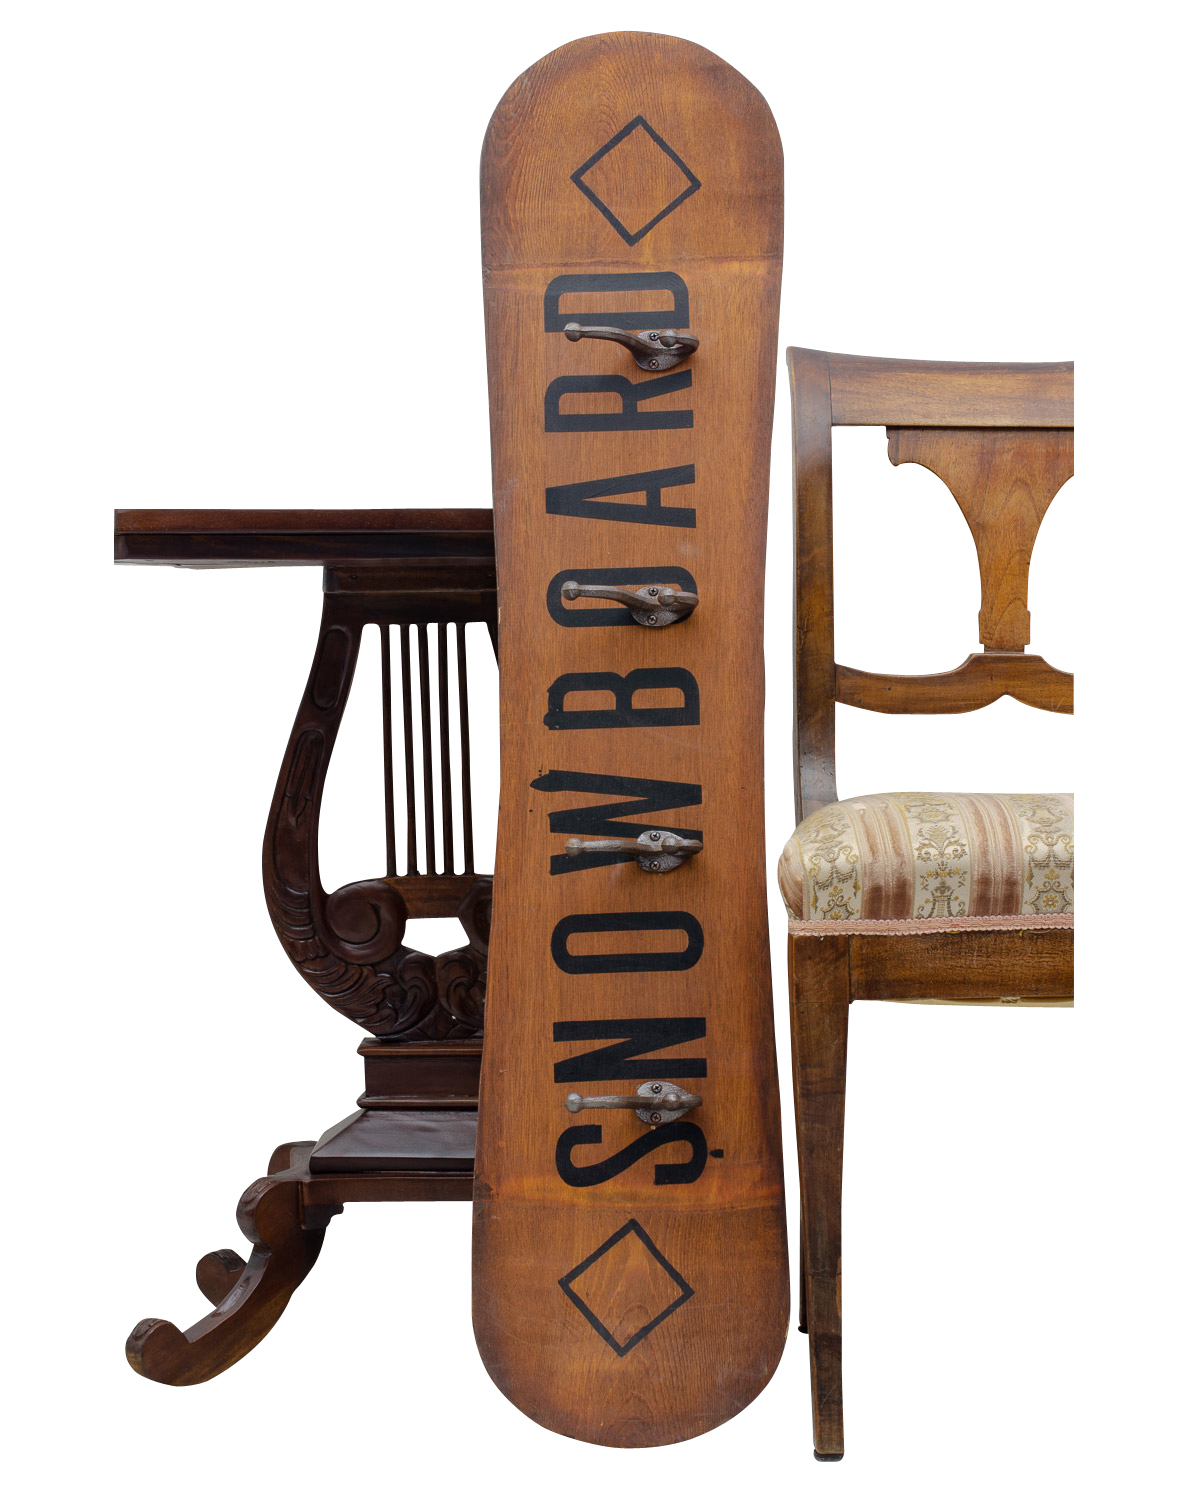 Garderobe Antik Holz Snowboard Wardrobe Rack With Hooks Clothes Hook Decoration Iron Antique Style | Aubaho ®